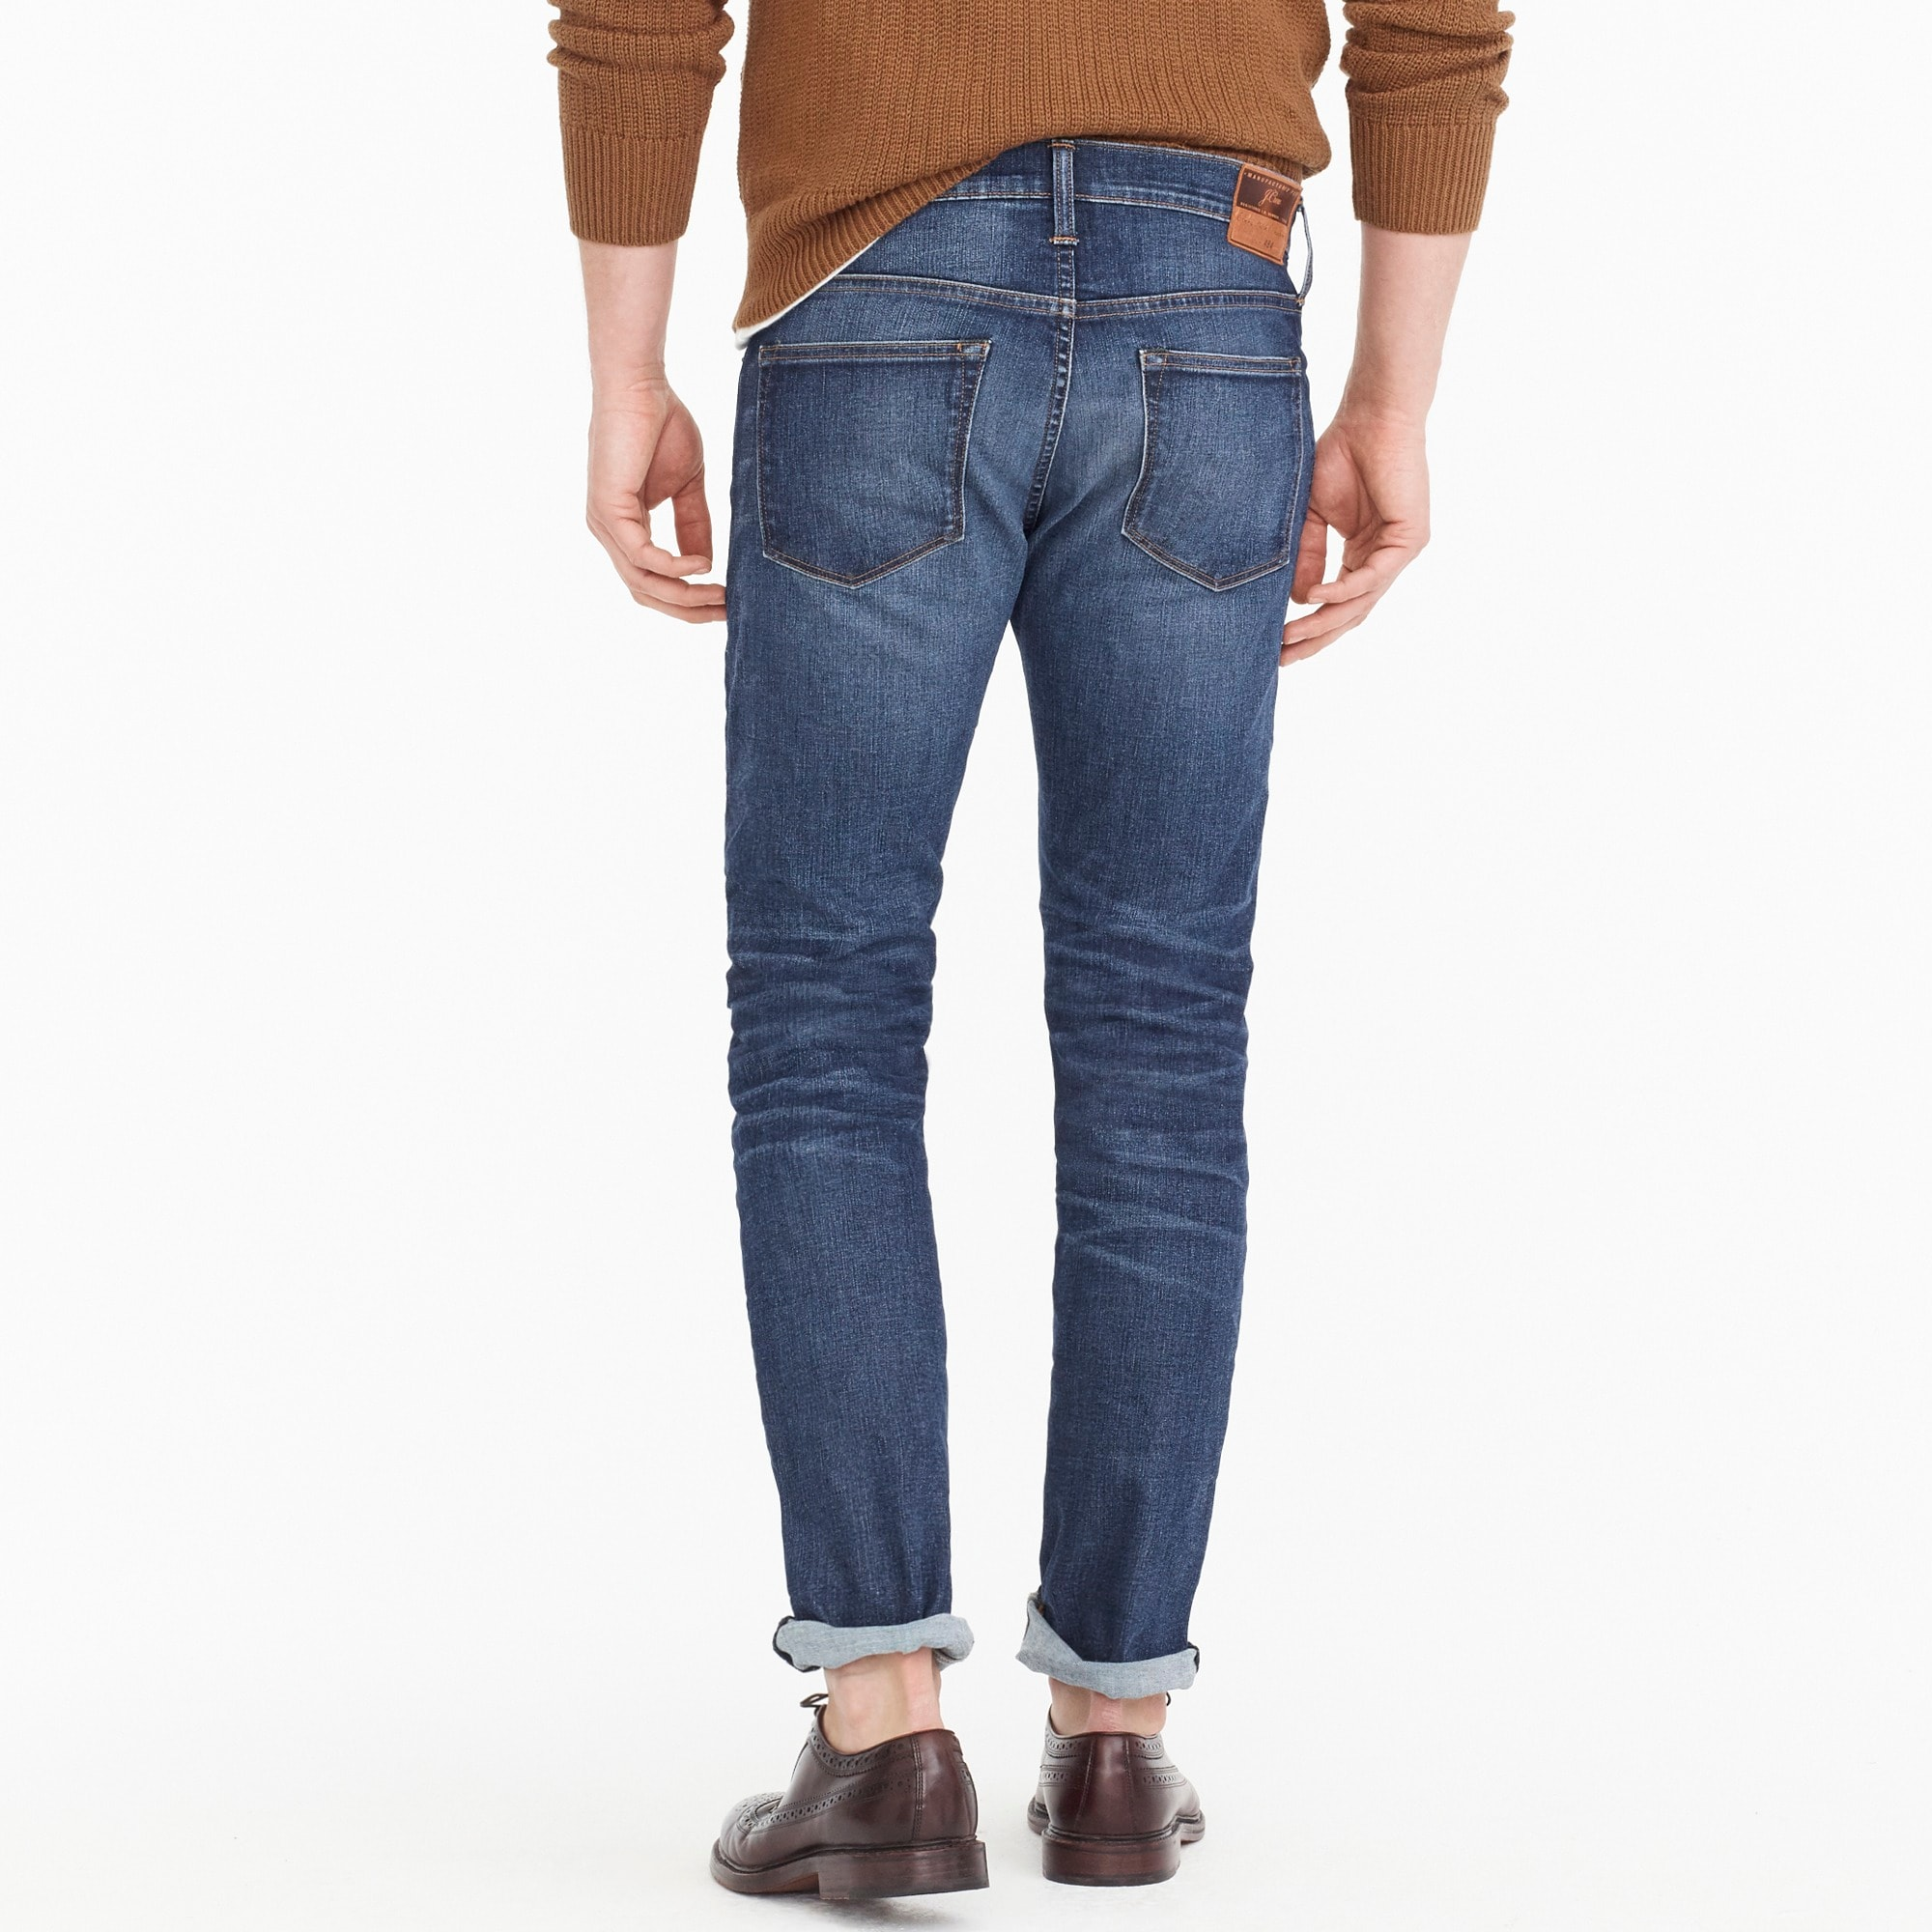 484 Slim-fit stretch jean in Dalton wash